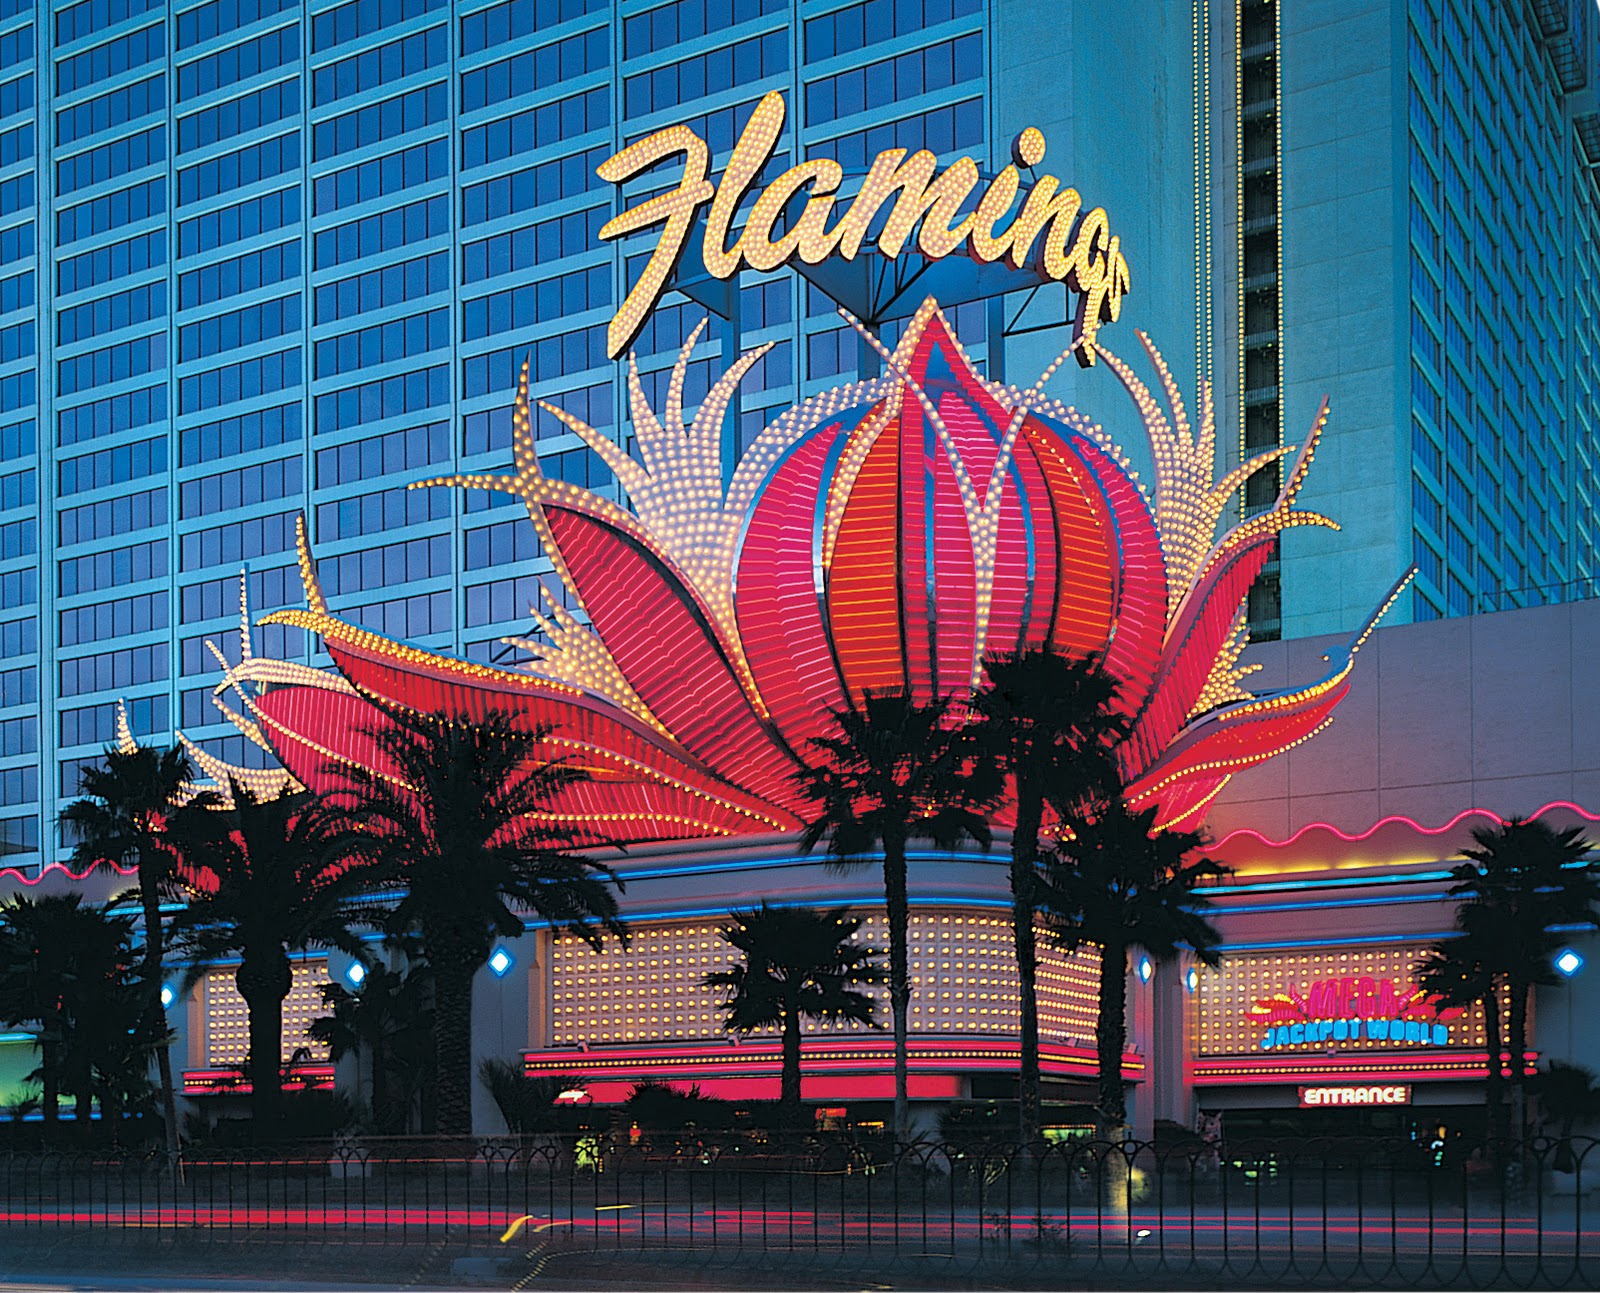 The Flamingo Hilton